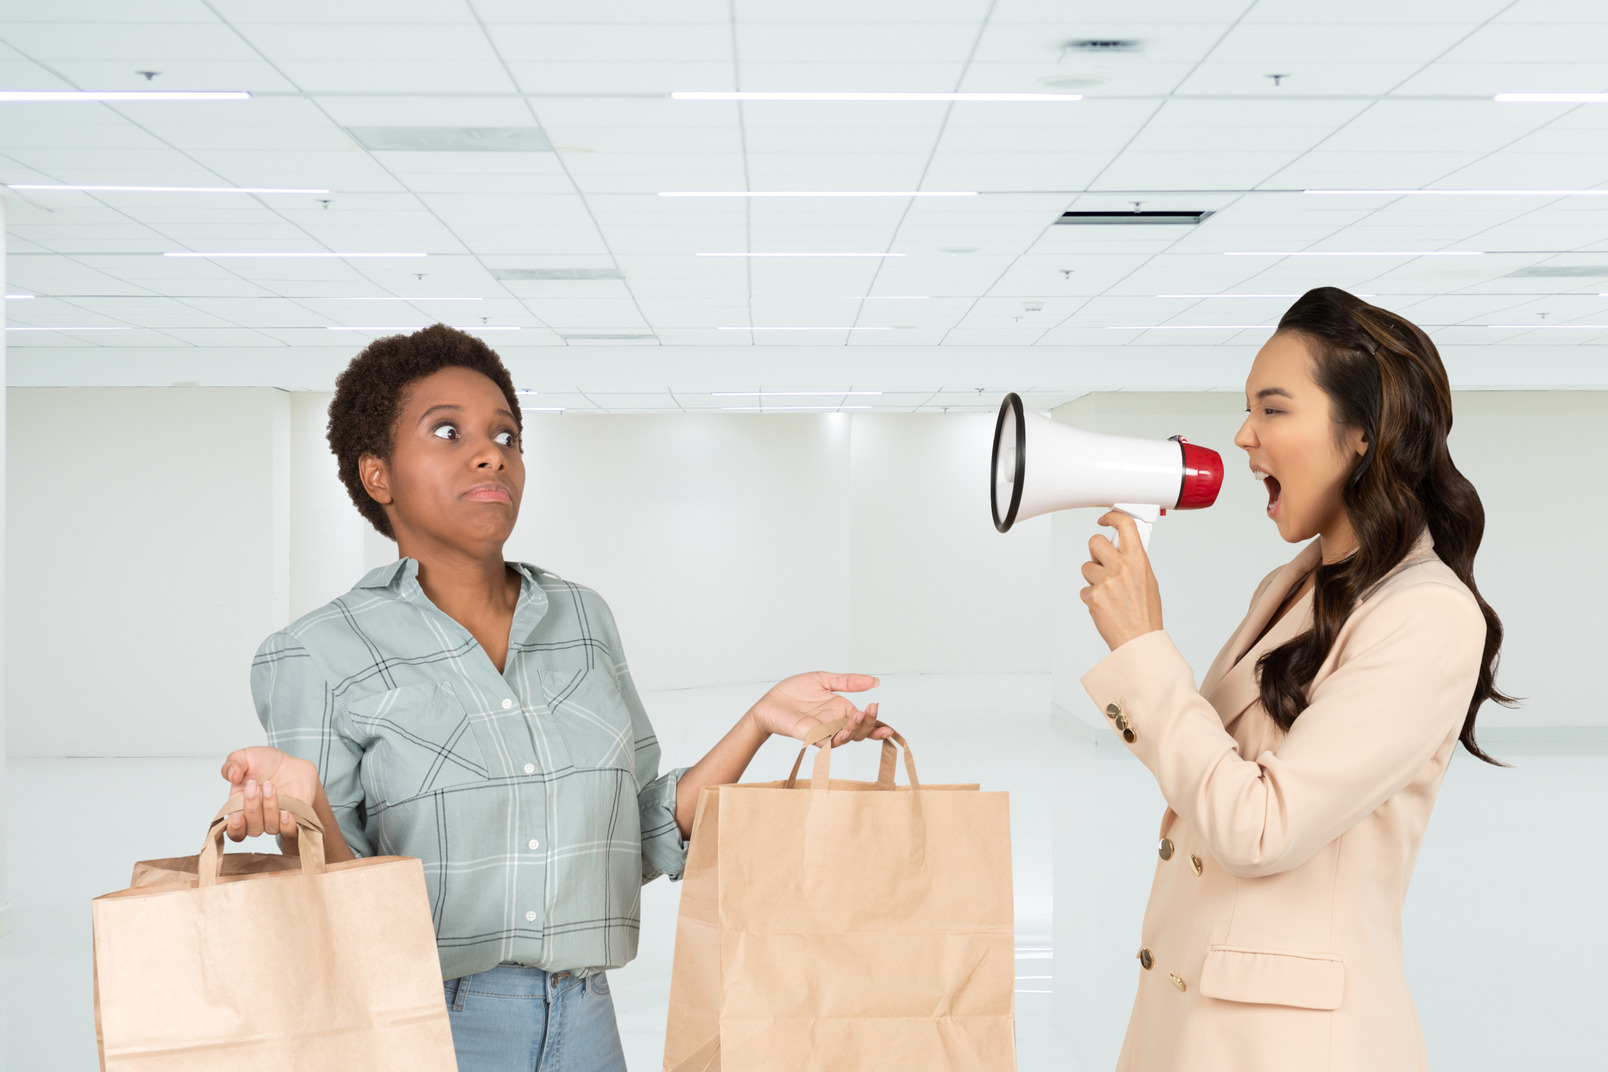 Female office employee yelling in megaphone at promoter